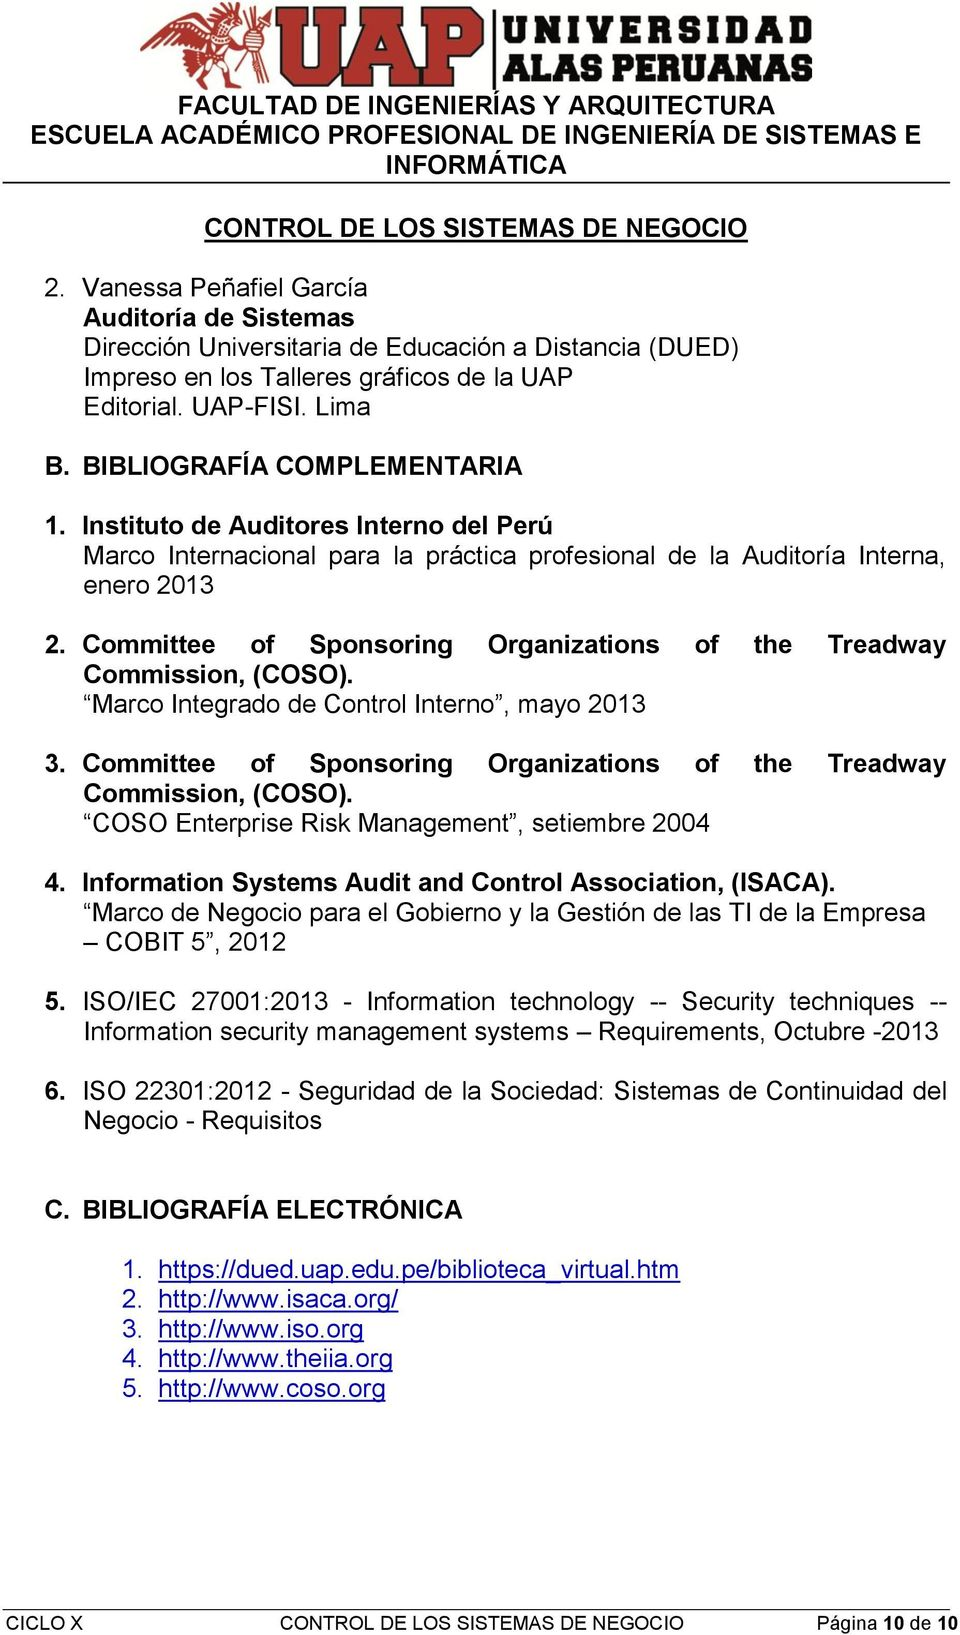 Committee of Sponsoring Organizations of the Treadway Commission, (COSO). Marco Integrado de Control Interno, mayo 2013 3. Committee of Sponsoring Organizations of the Treadway Commission, (COSO).